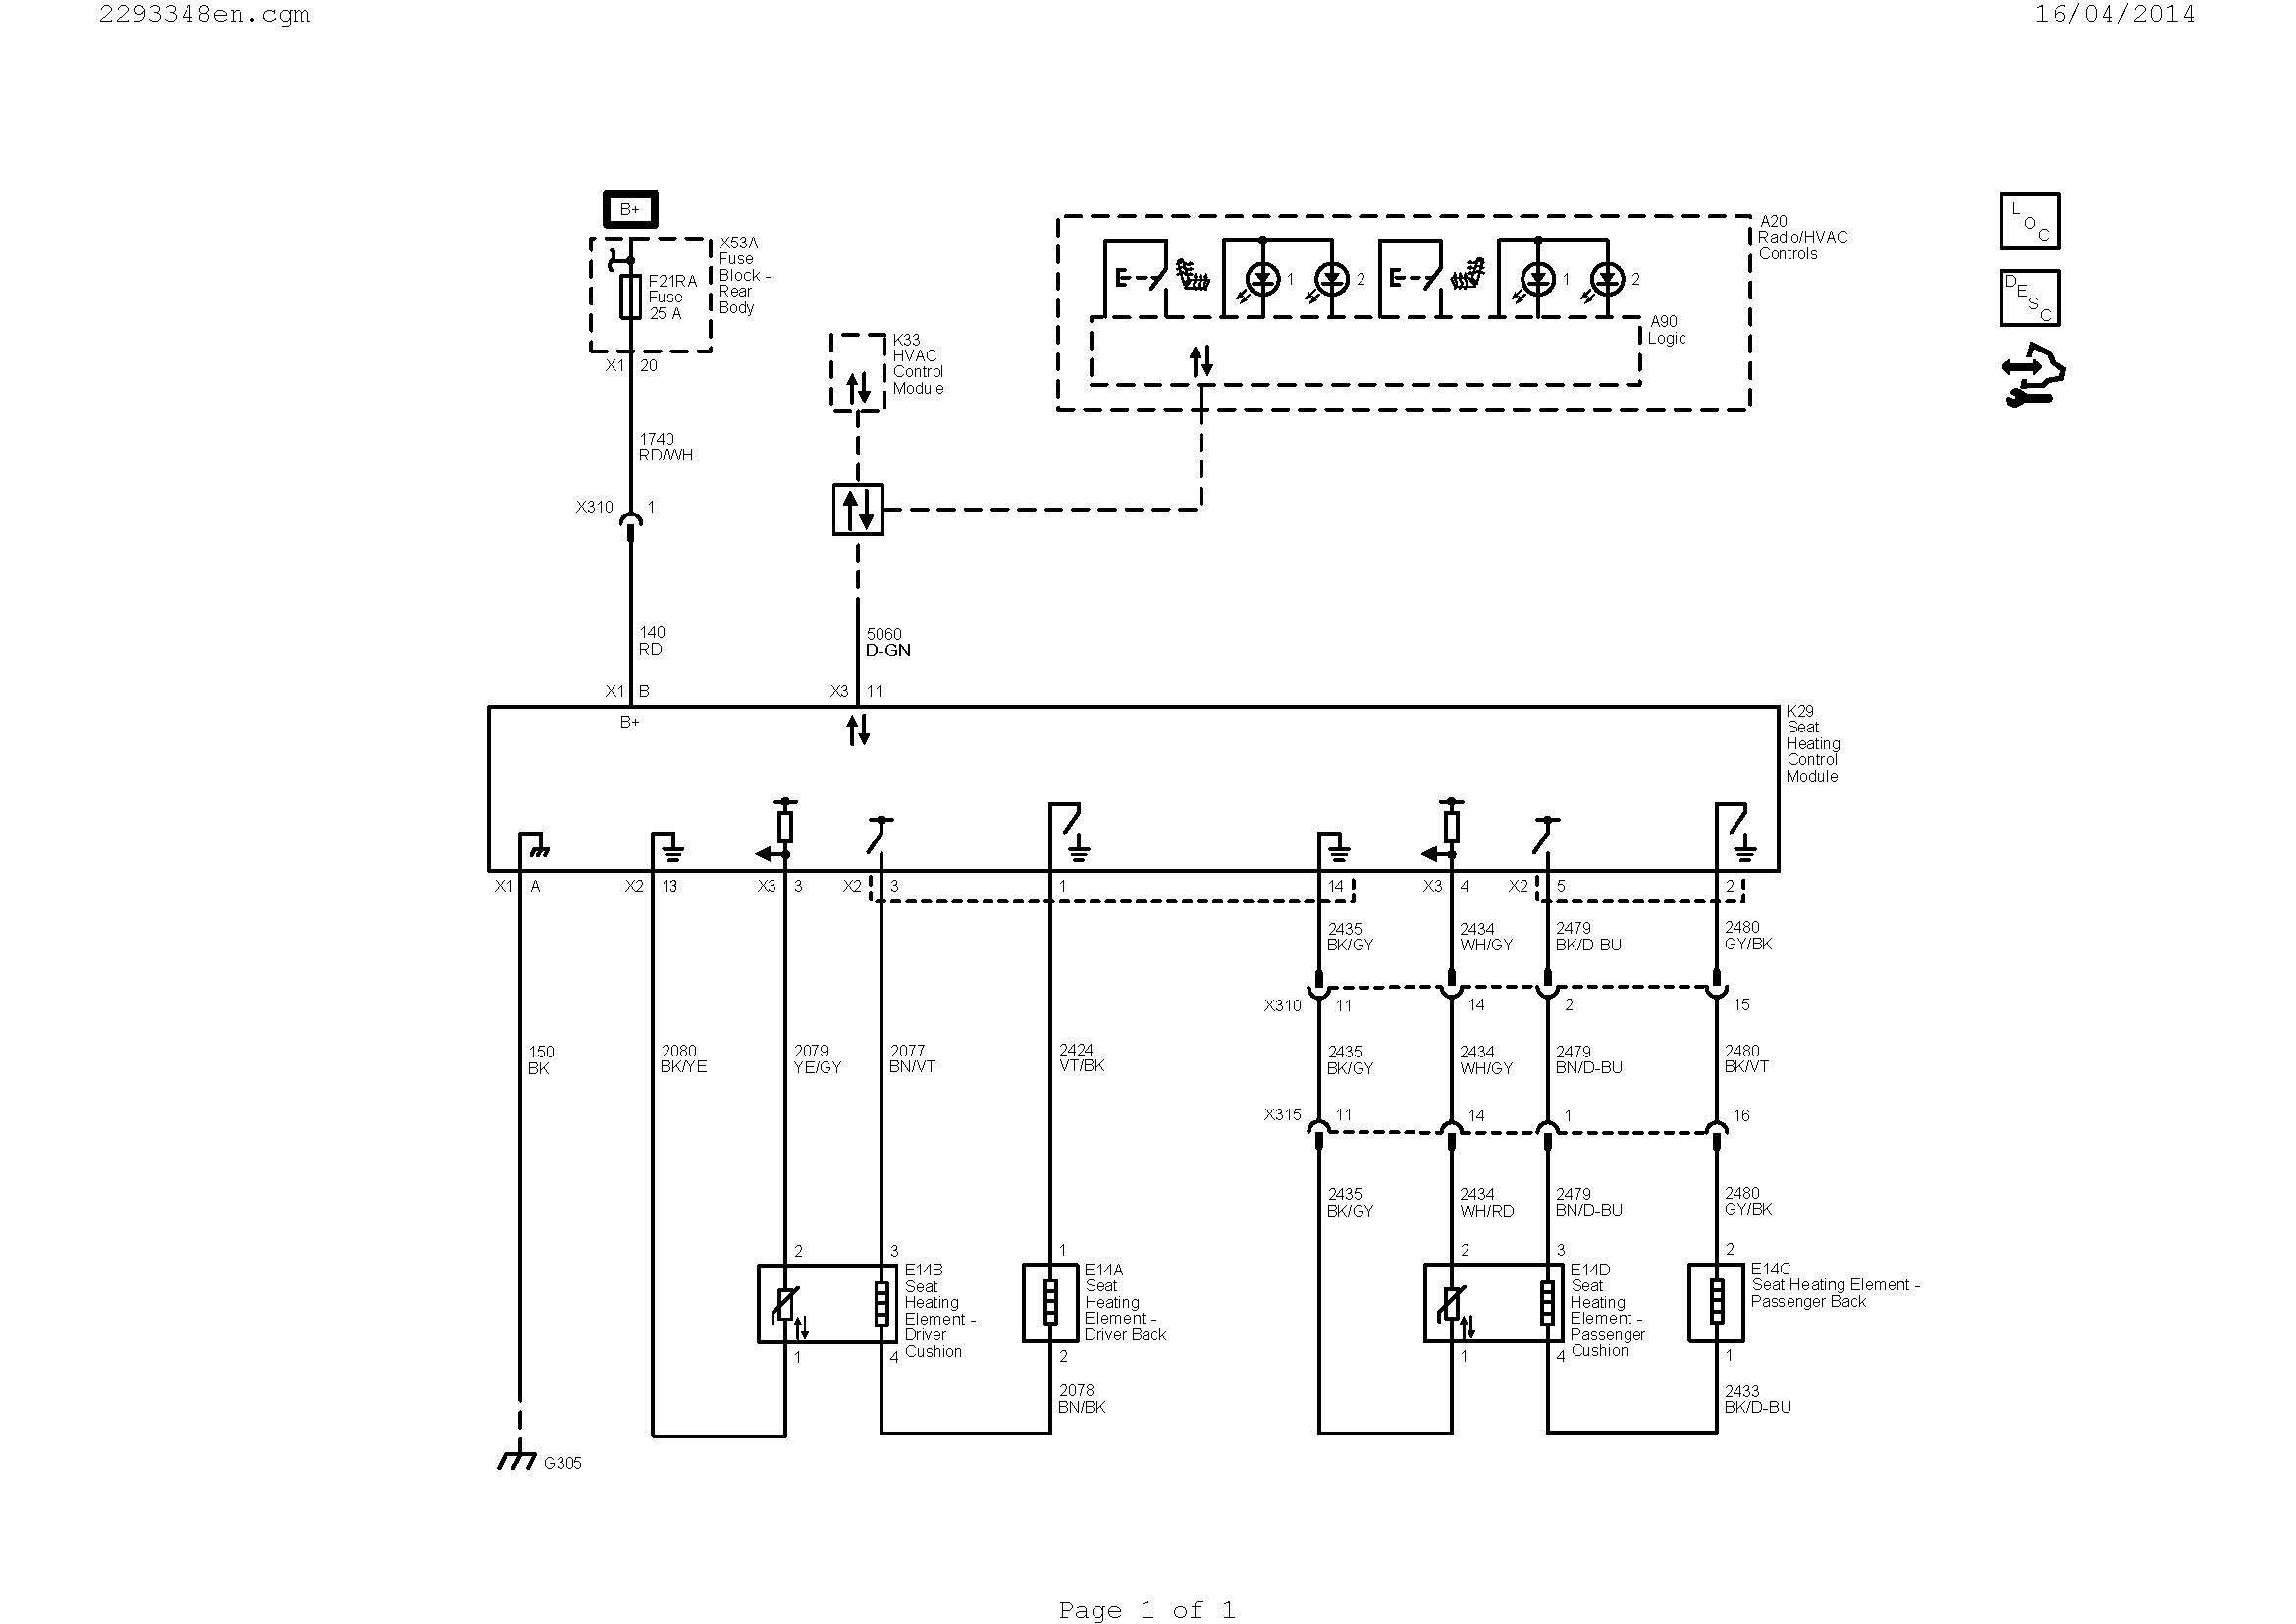 fan control wiring diagram Download-fan wiring diagram Collection Wiring Diagram For Changeover Relay Inspirationa Wiring Diagram Ac Valid Hvac DOWNLOAD Wiring Diagram 4-c